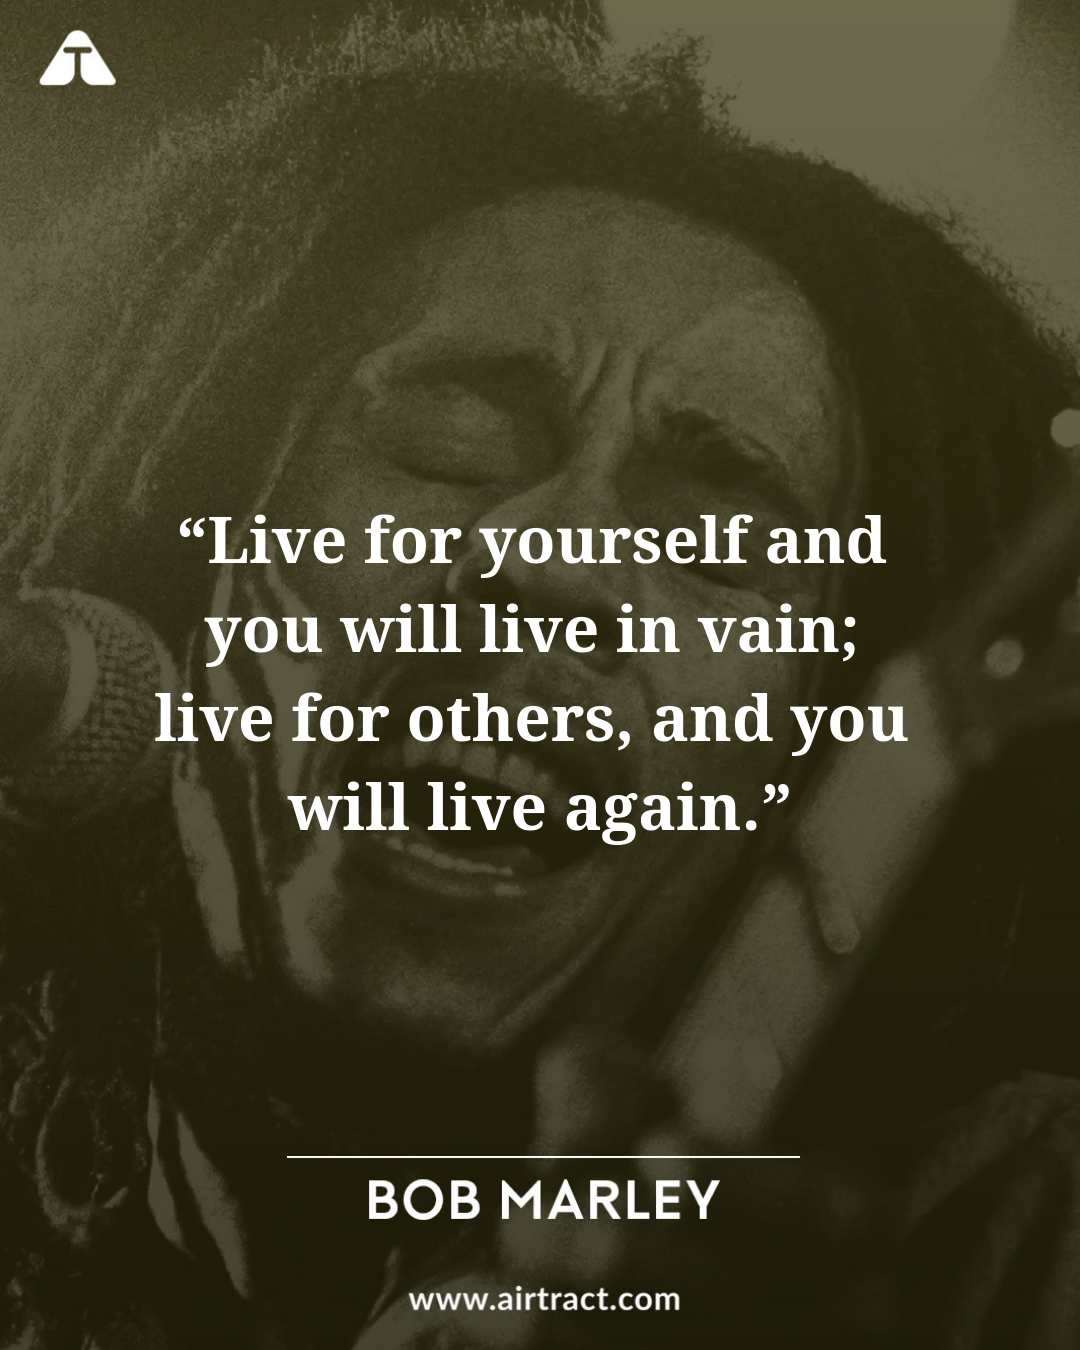 18 Bob Marley Quotes On Life, Peace And Happiness | AirTract